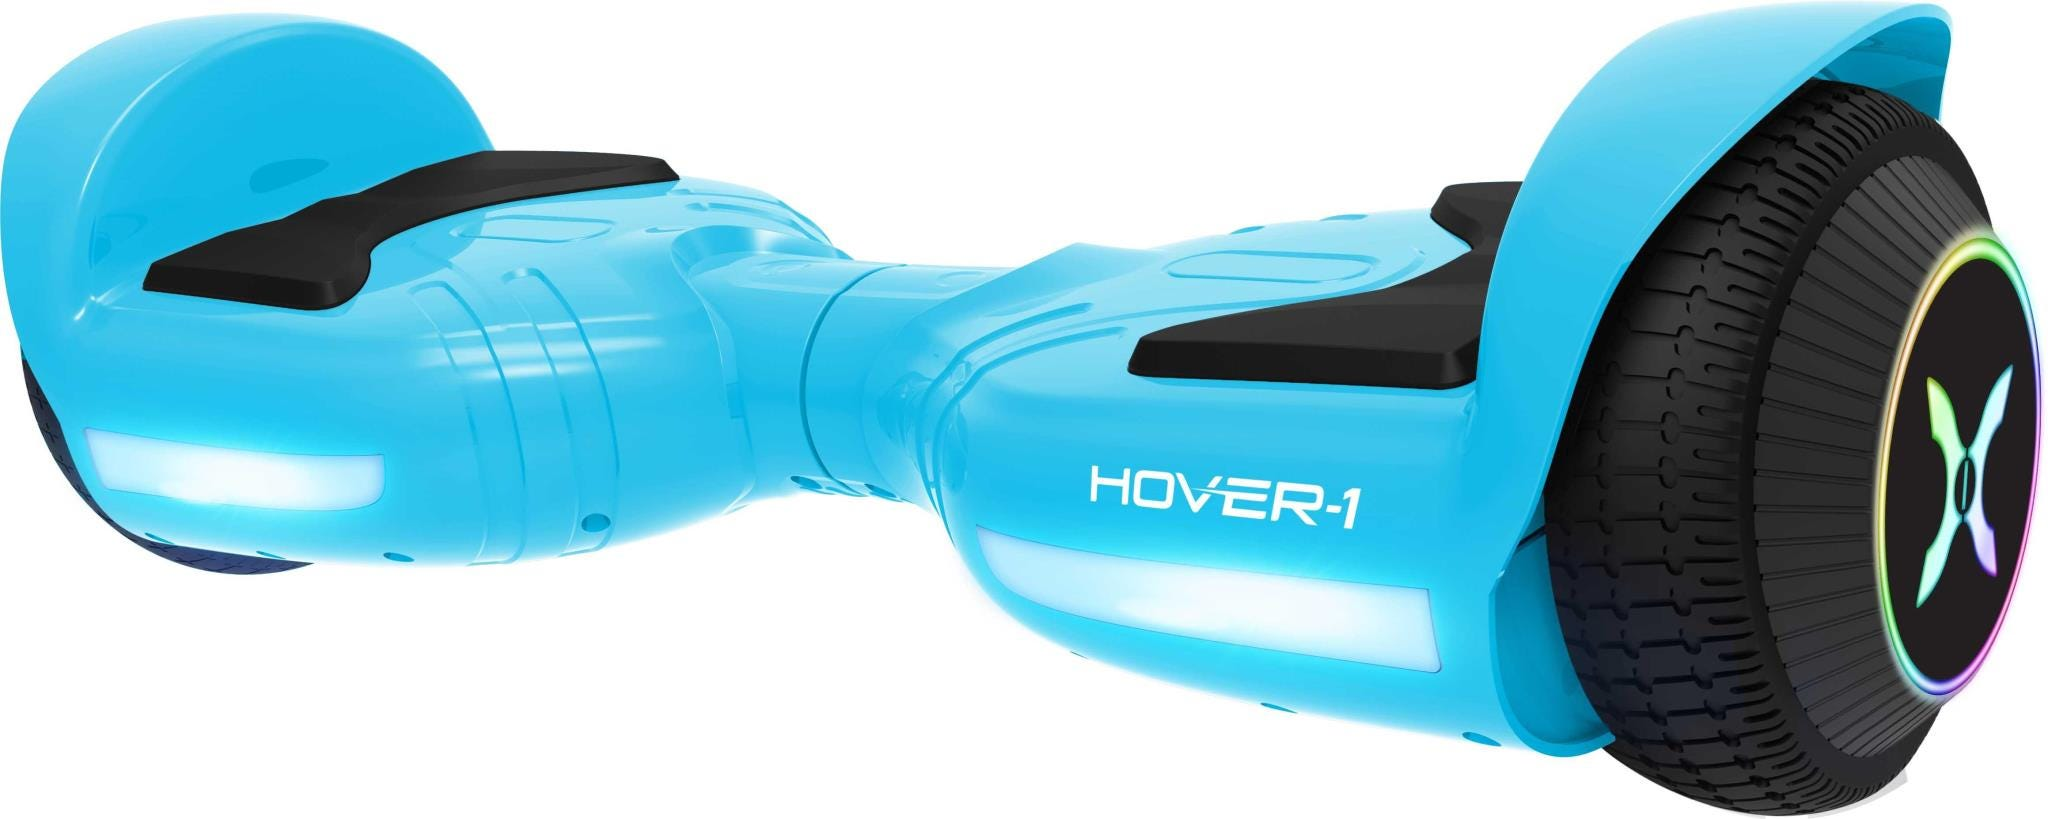 Hover-1 Rival Hoverboard - Blue